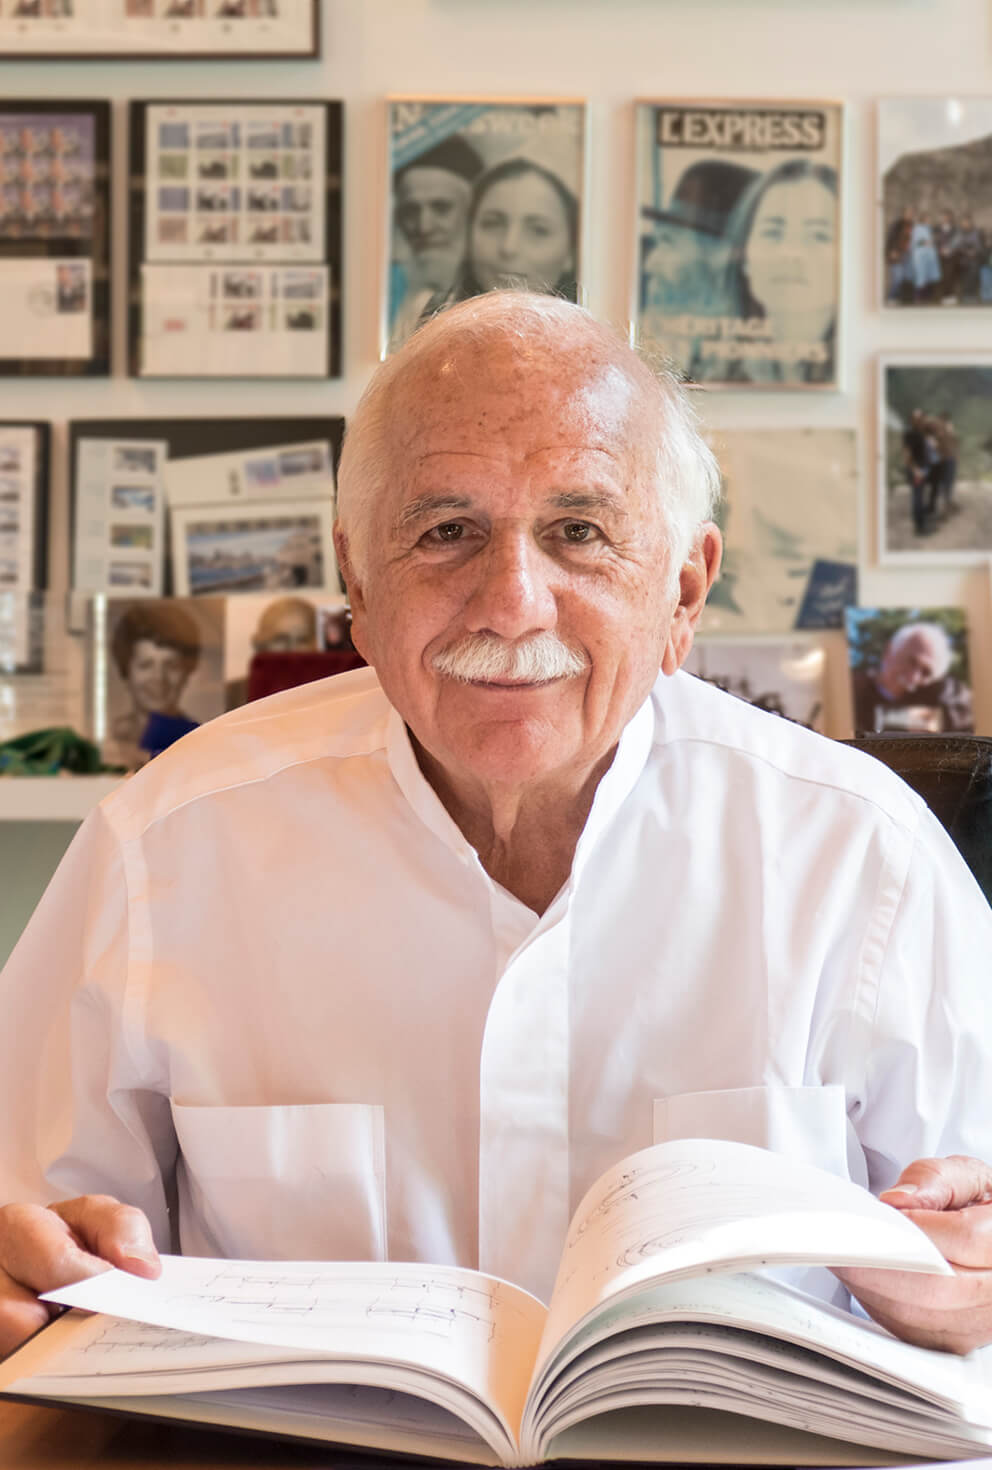 Moshe Safdie believes the world needs architects now more than ever